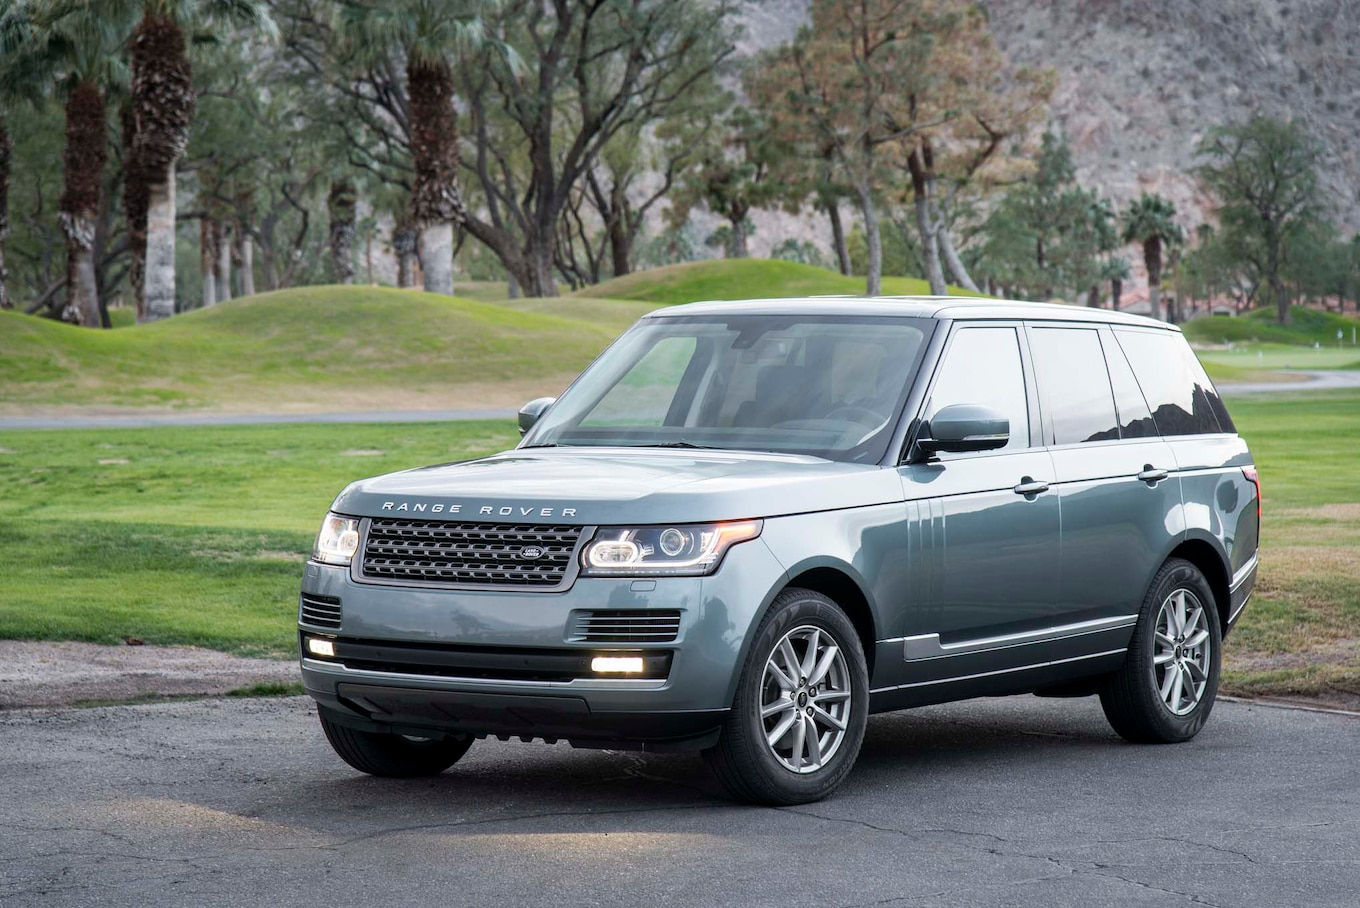 2014 Land Rover Range Rover Long Term Update 1 Motor Trend